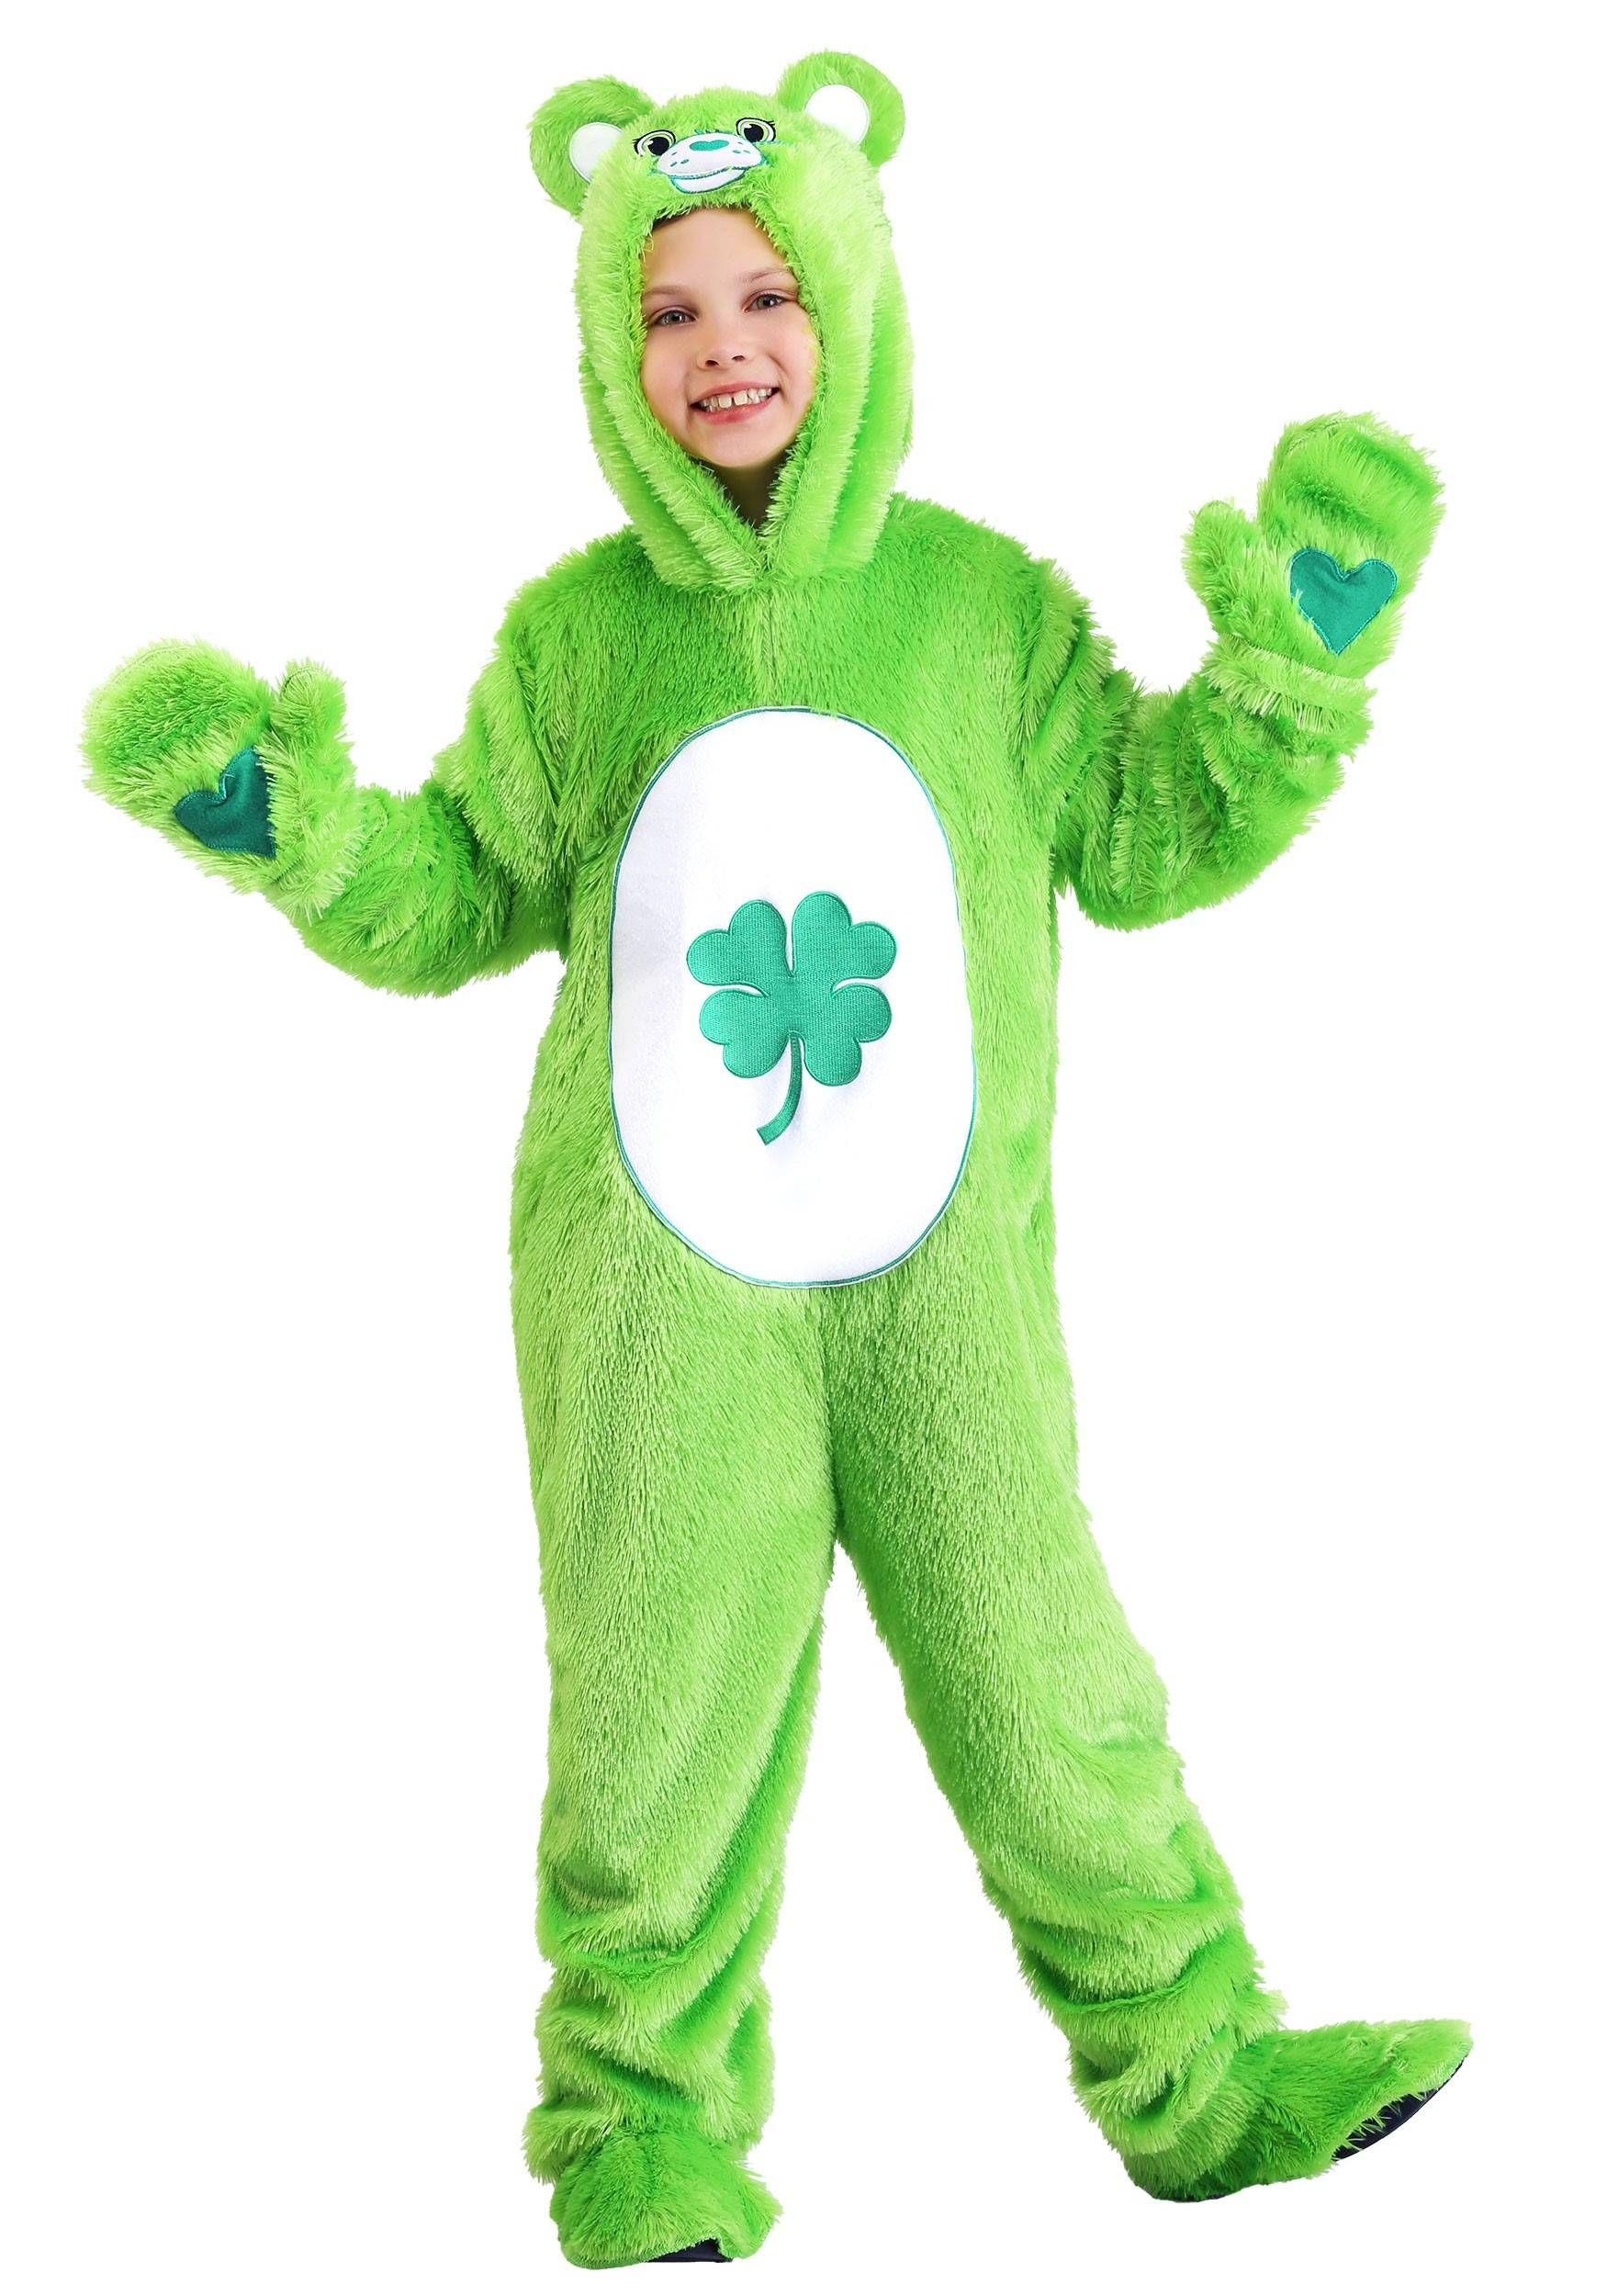 FUN Costumes Kid's Care Bears Classic Good Luck Bear Costume  - Green/White - Size: Small